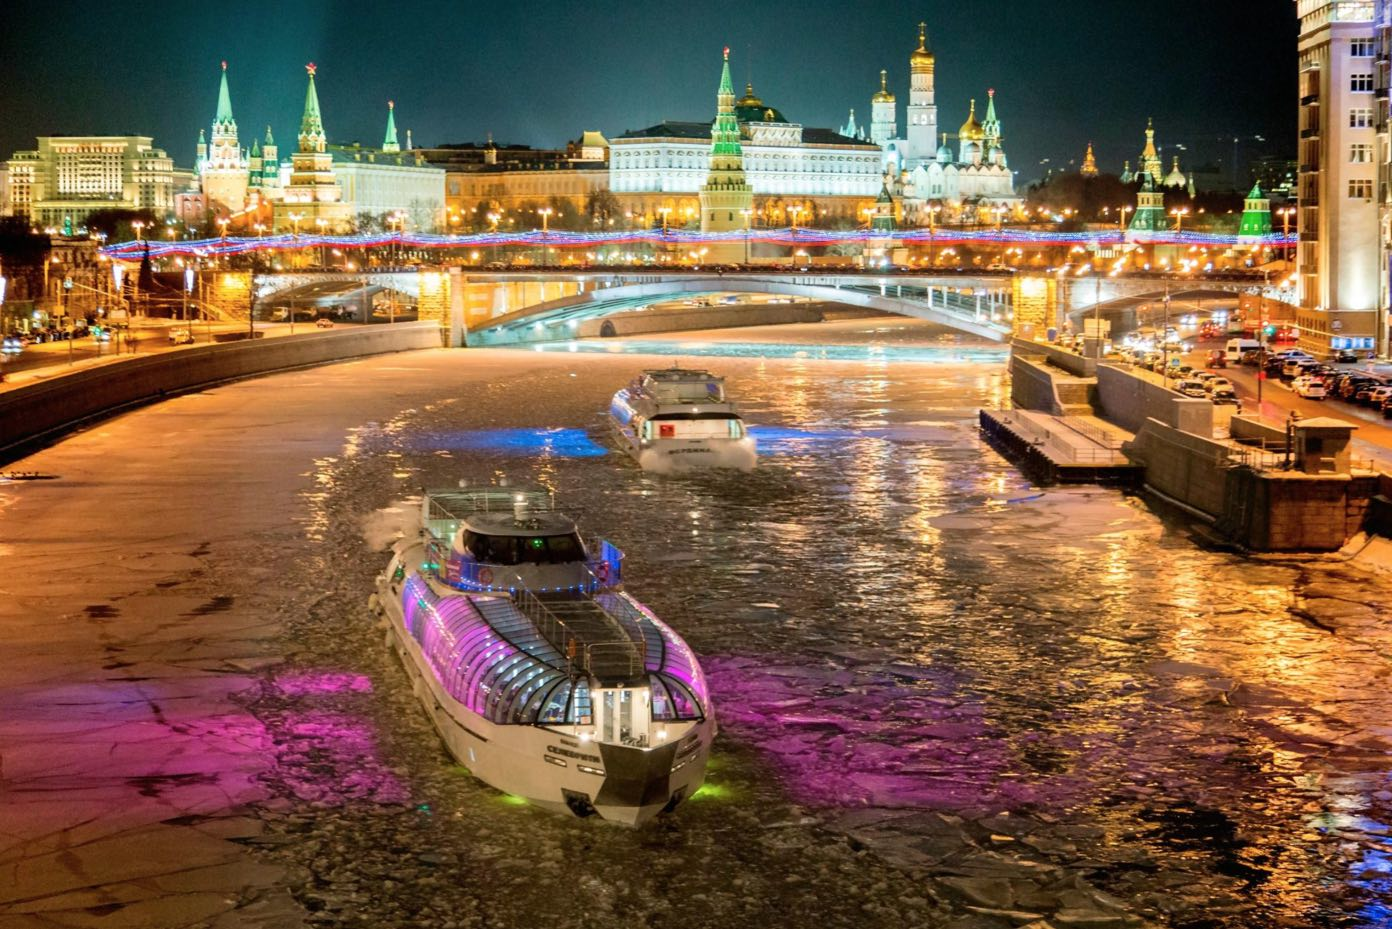 Radisson Flotilla boats in winter in Moscow